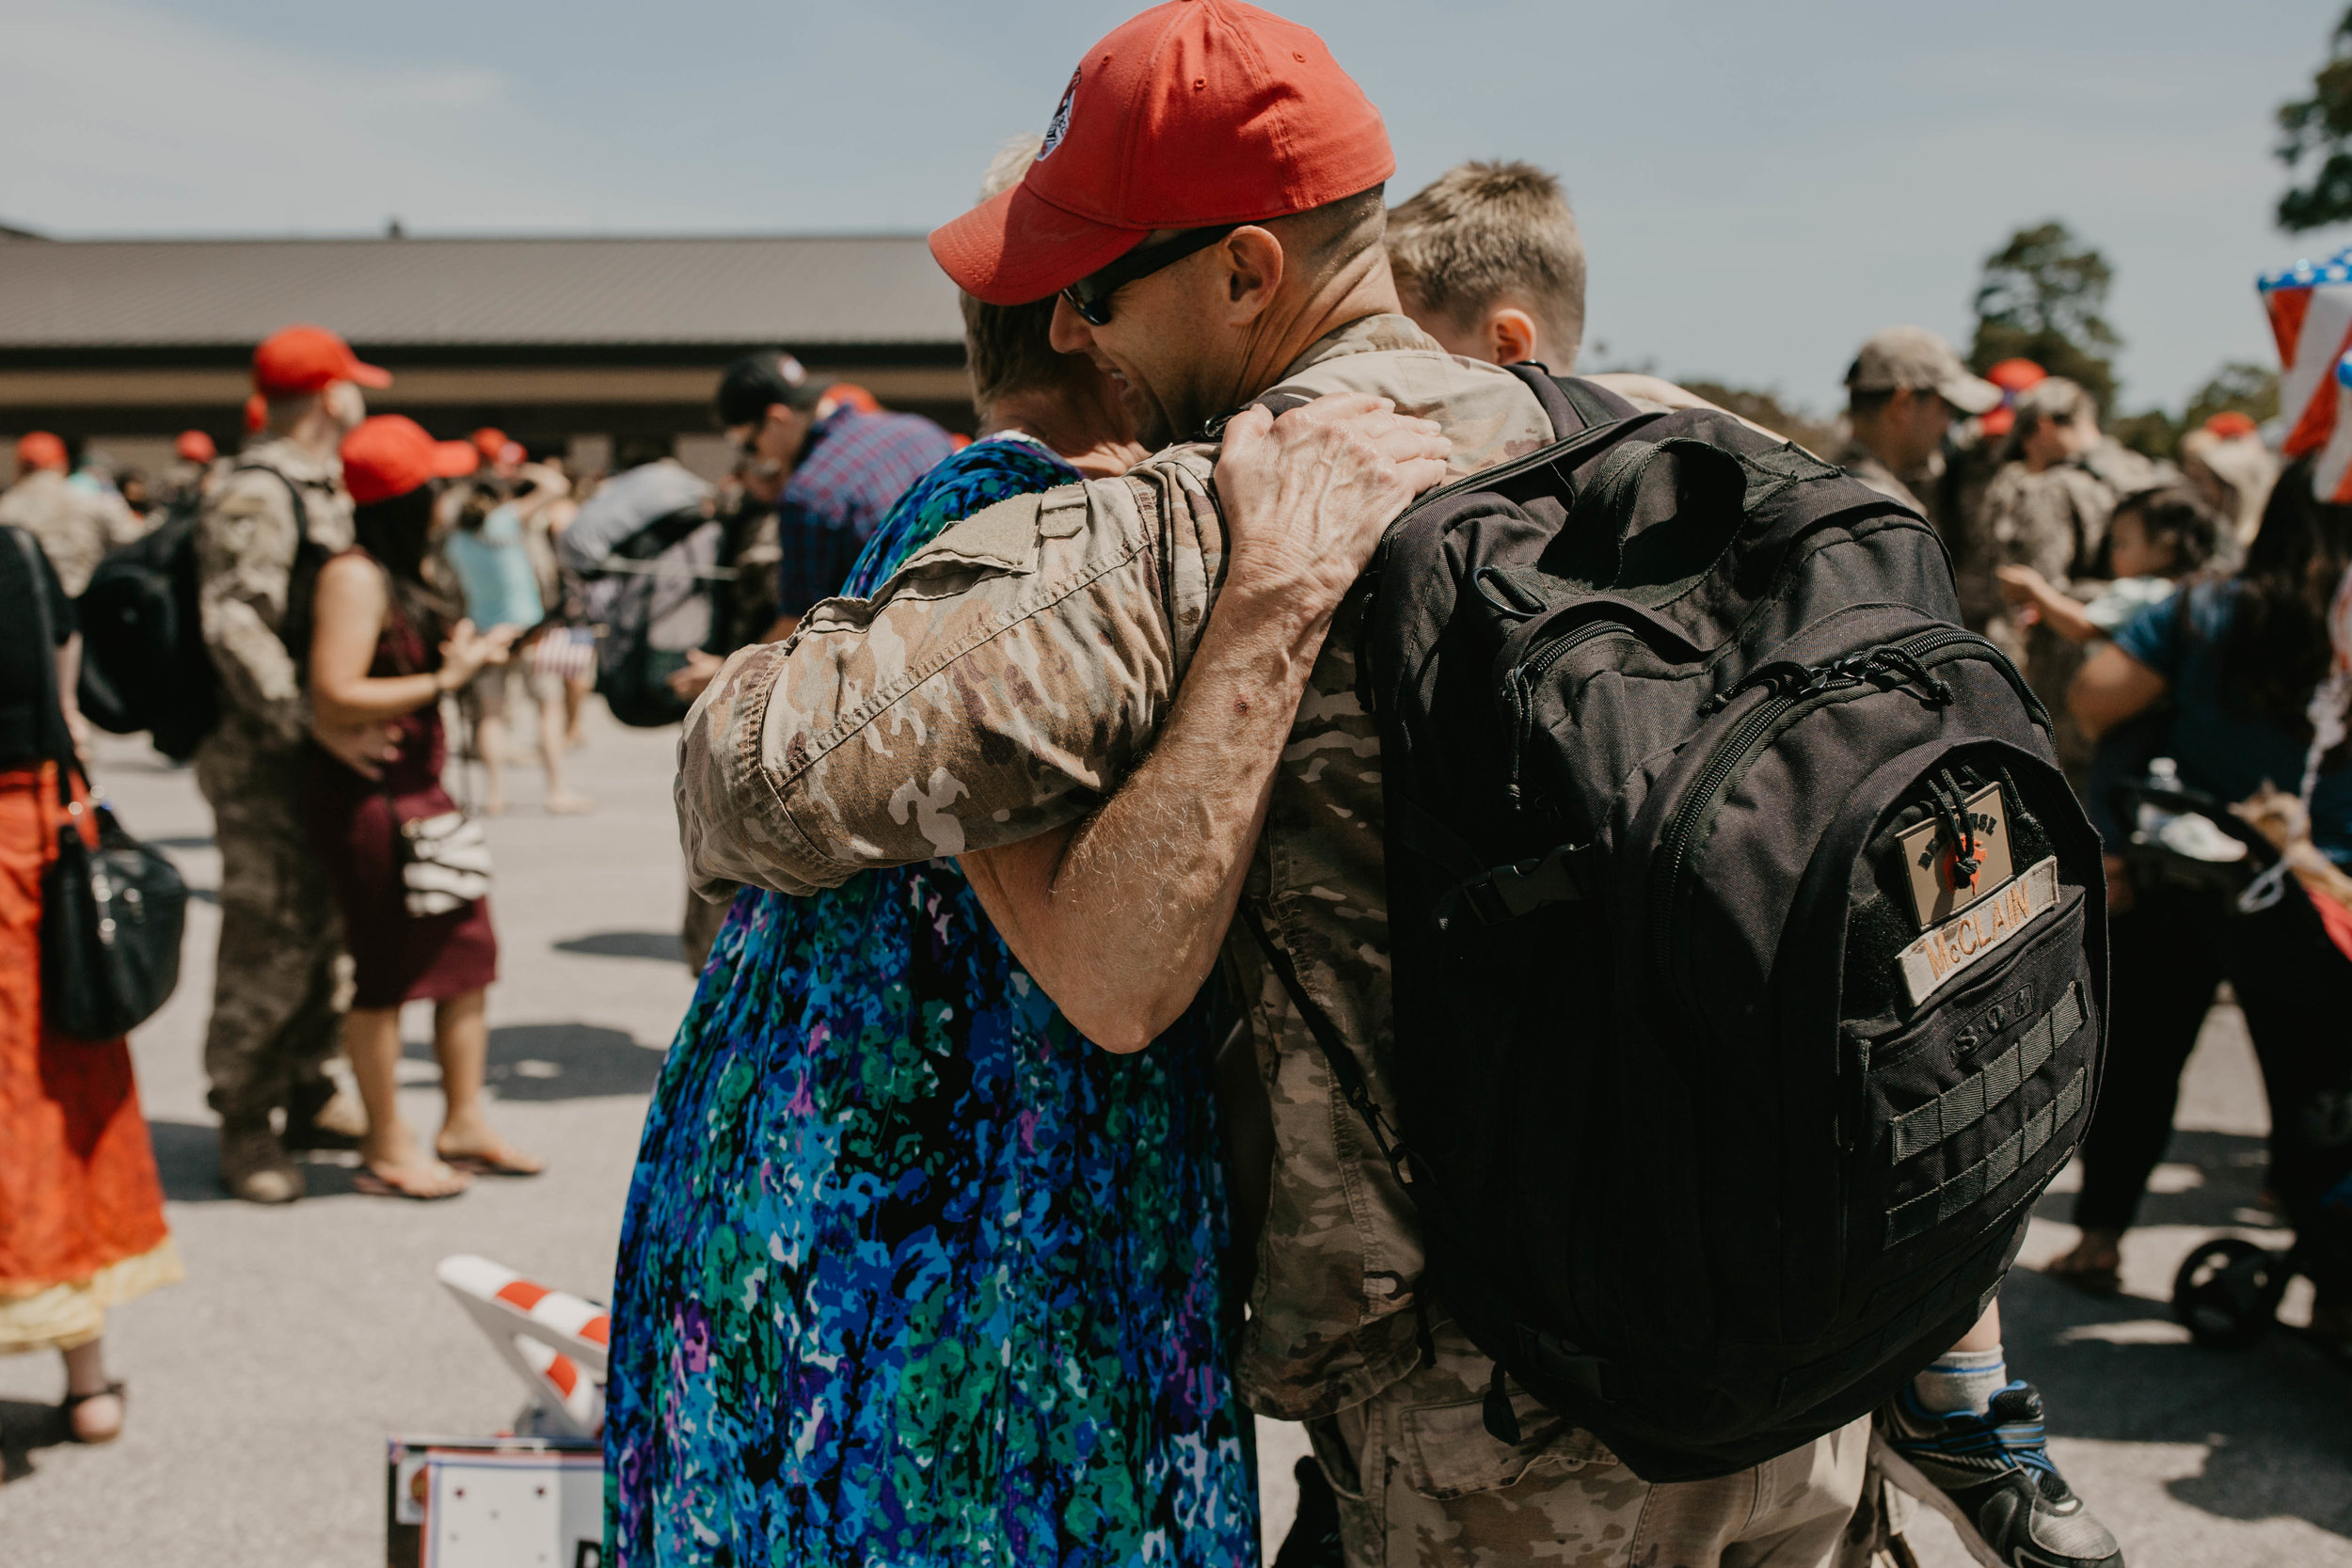 Family reunited after a 7 month deployment// Military homecoming photography